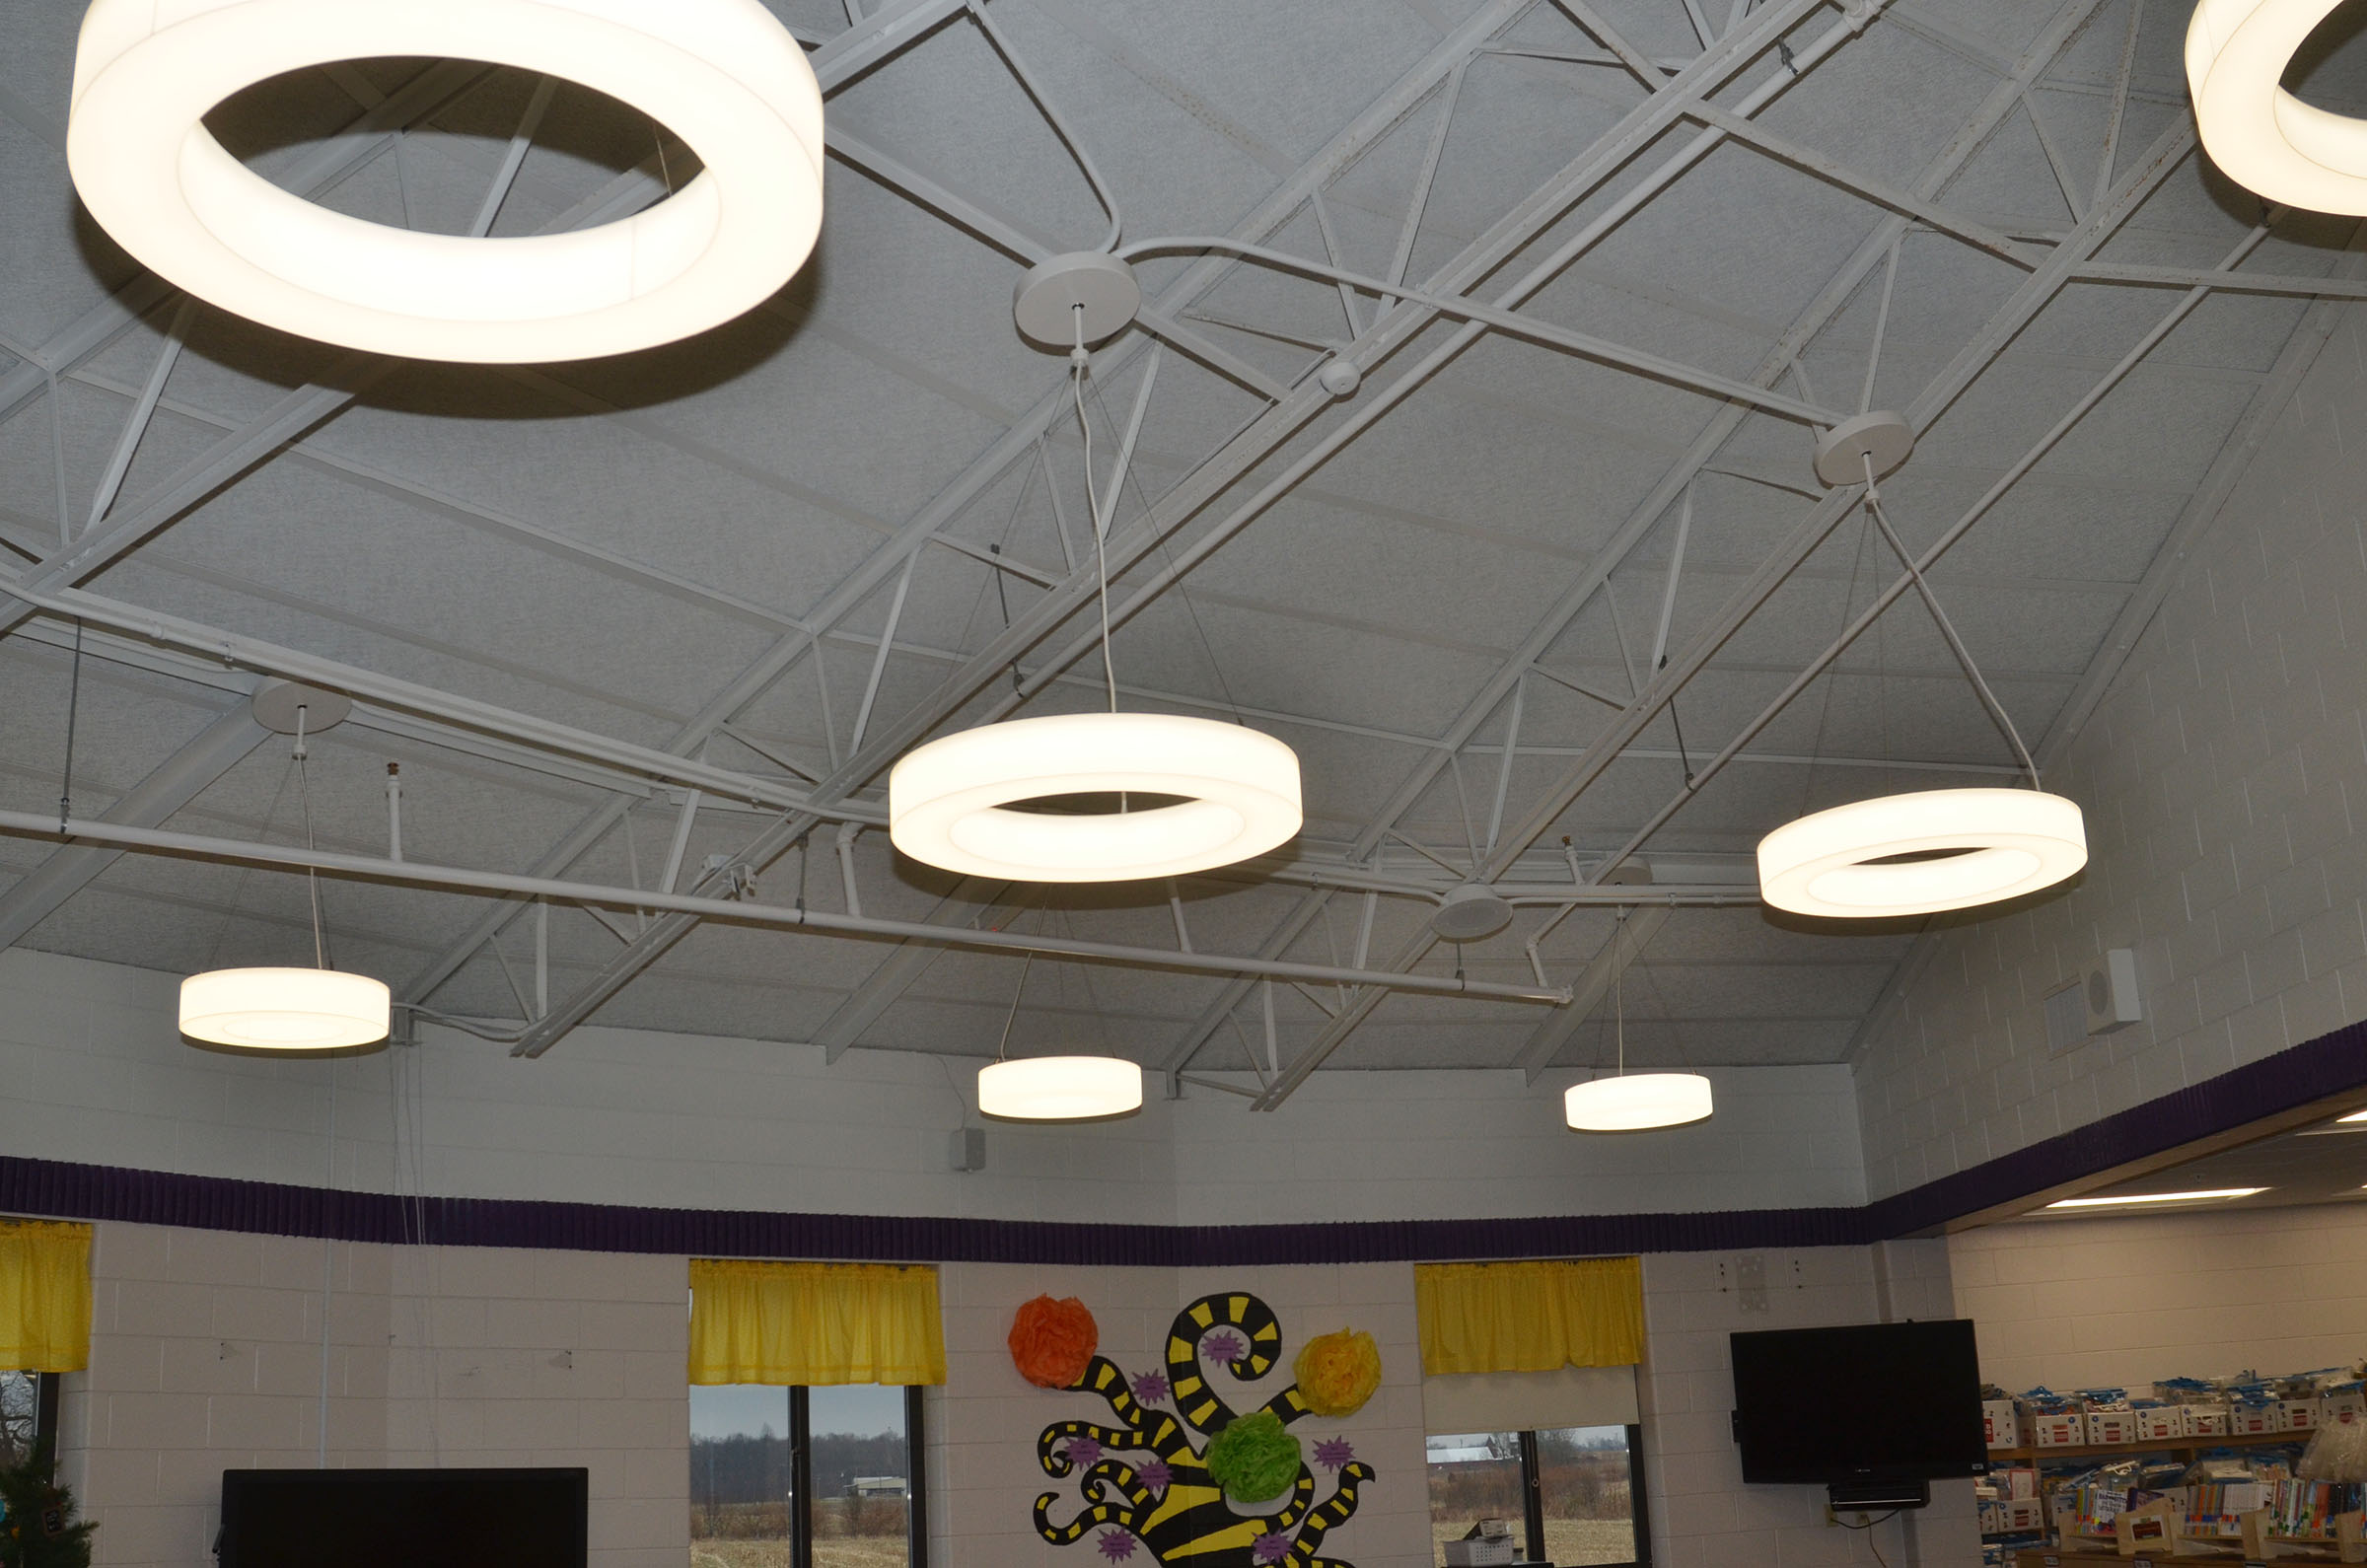 New lighting was recently installed at the CES library.